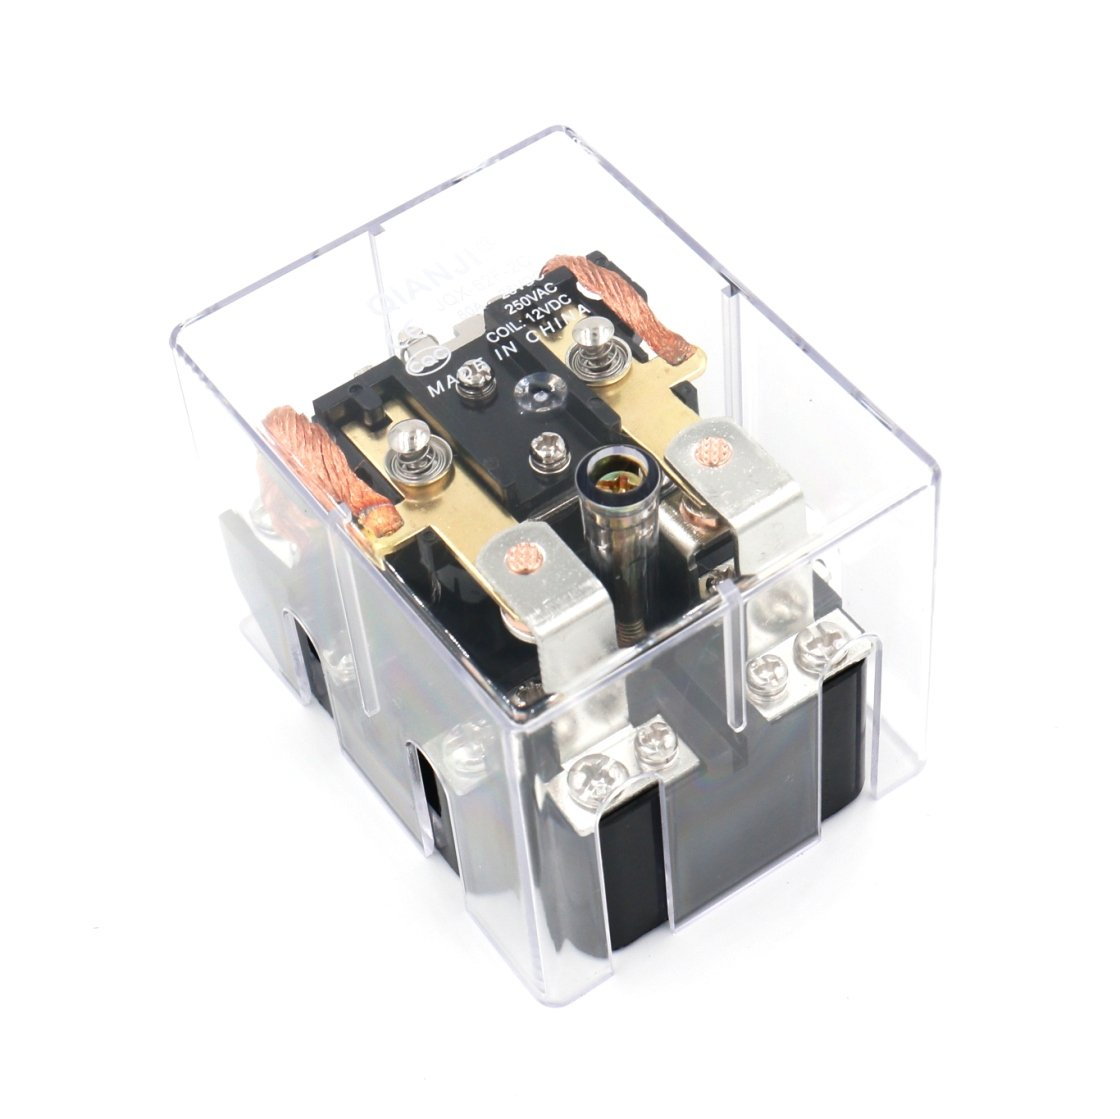 Baomain JQX-62F-2C Coil Voltage DC 12V 80A DPDT Electronmagnetic Relay